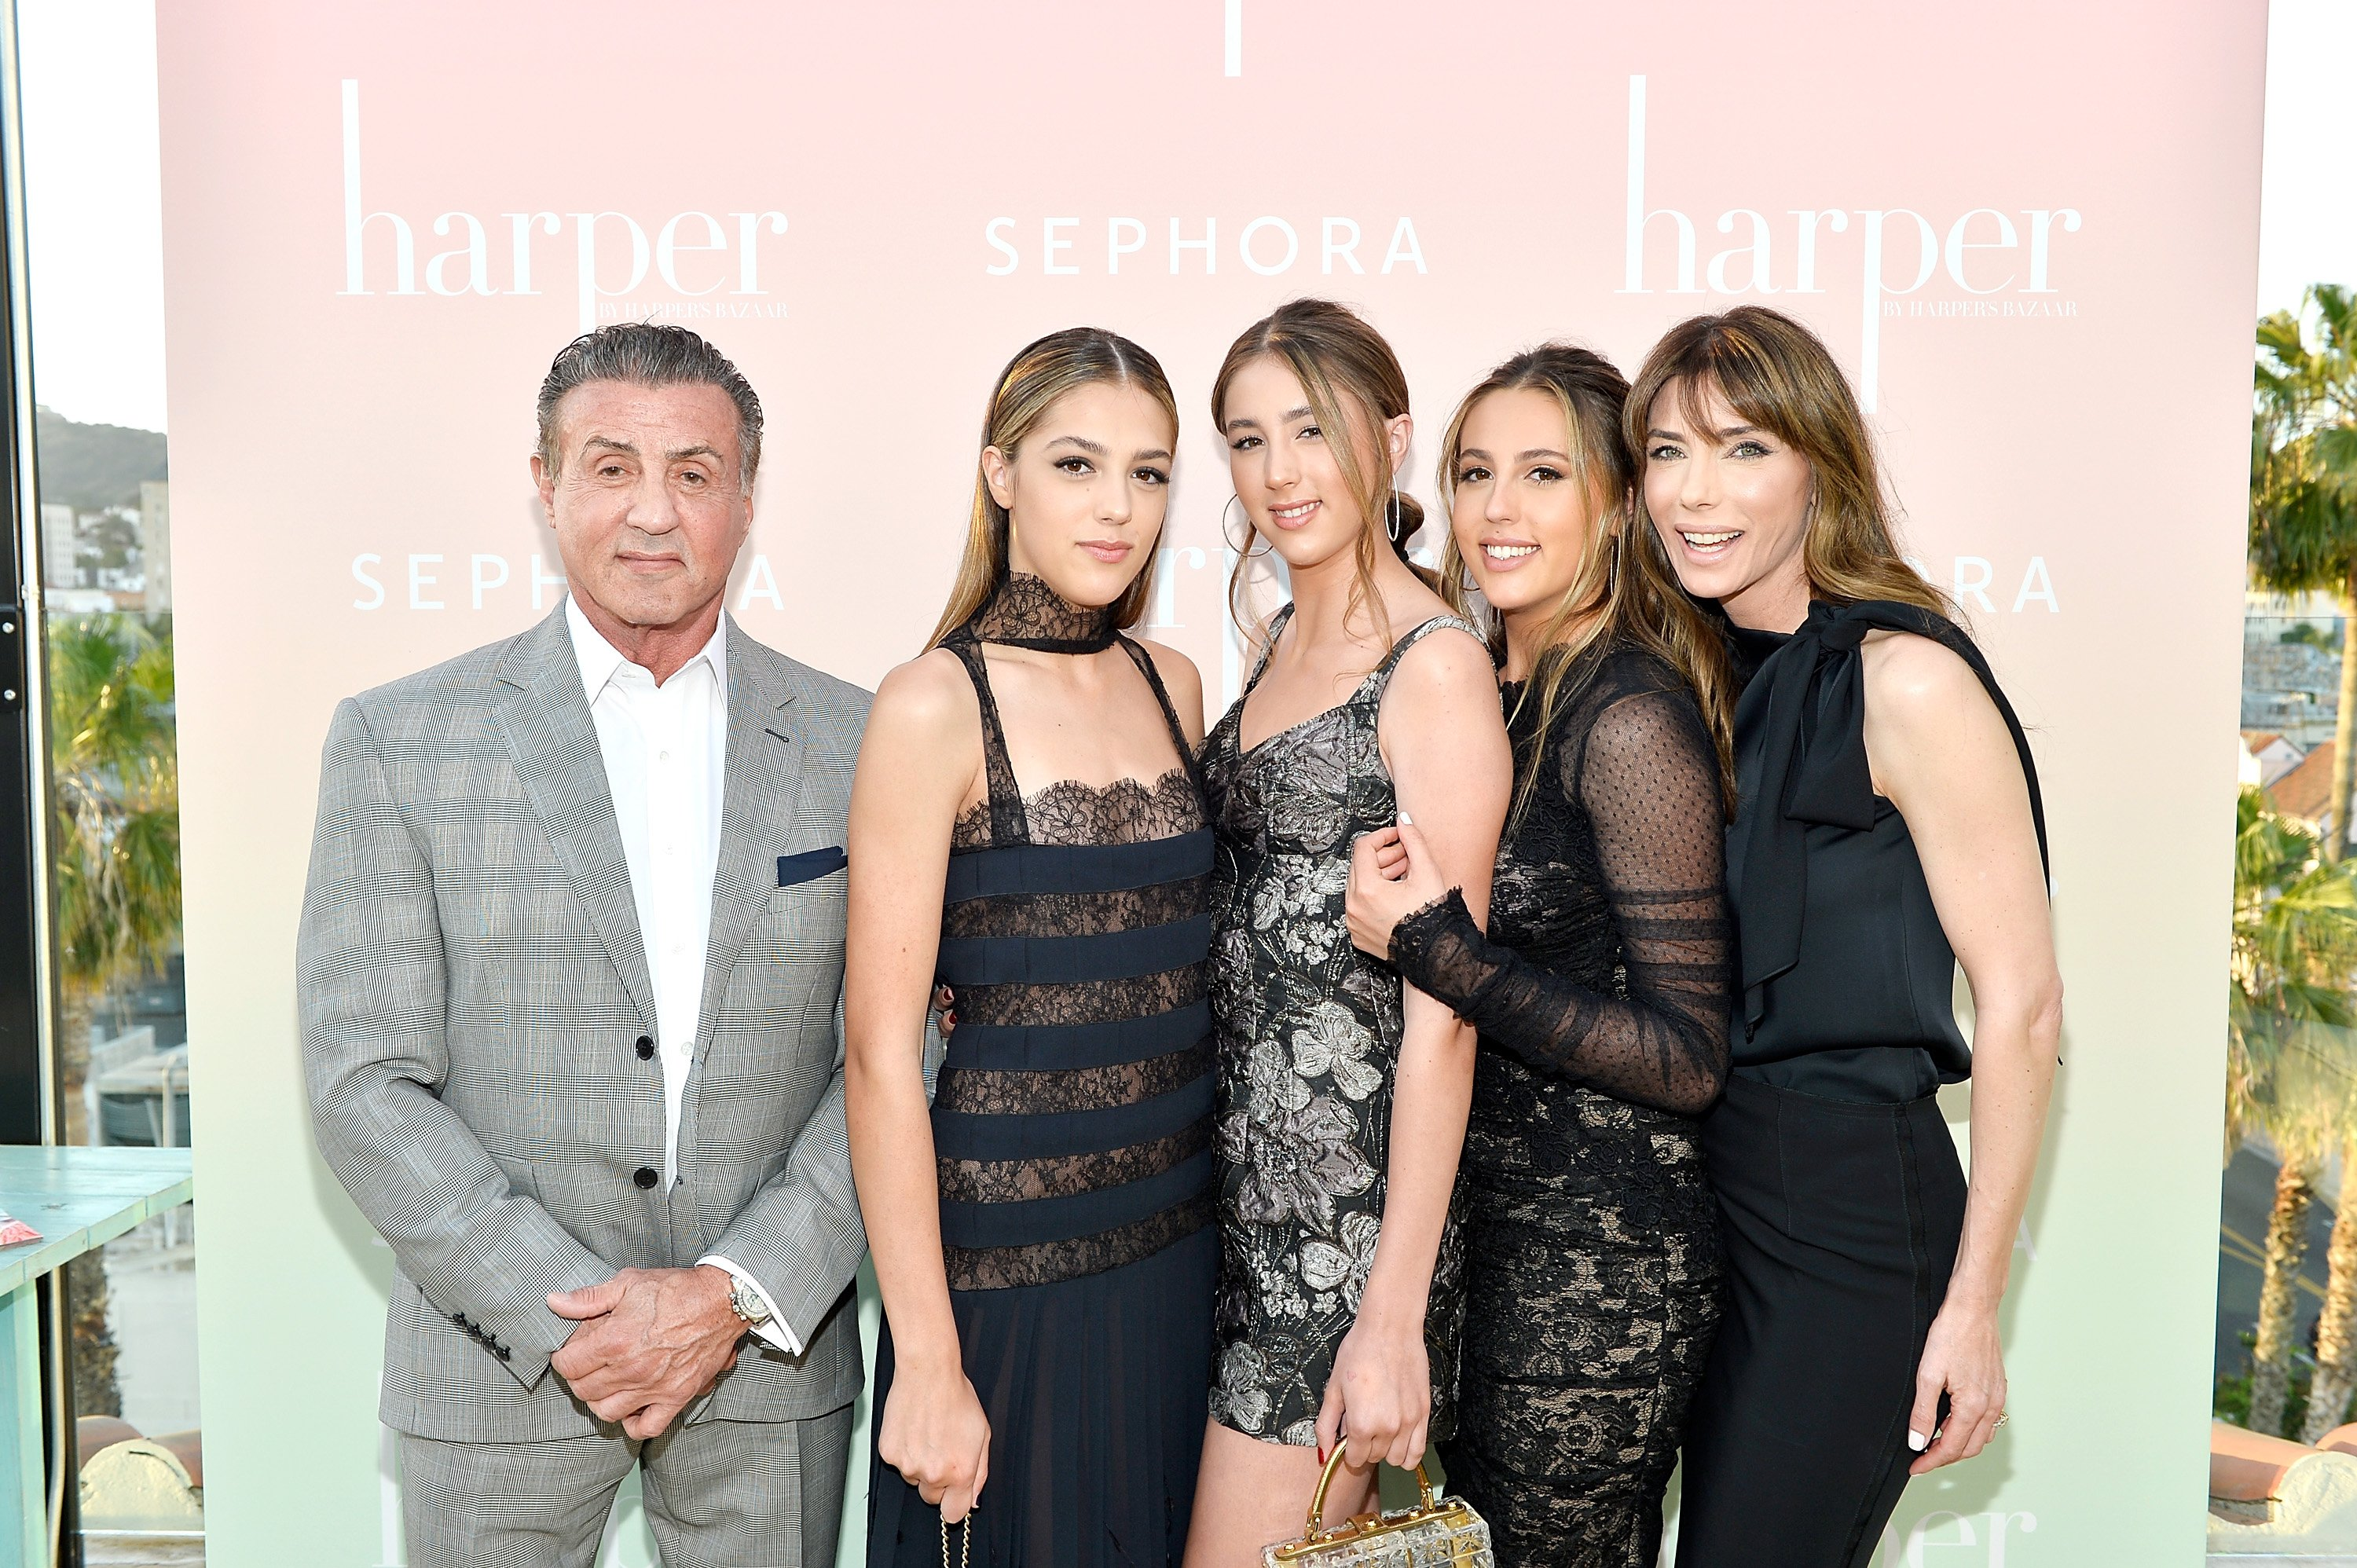 : Sylvester Stallone; Sistine Stallone; Scarlet Stallone; Sophia Stallone and Jennifer Flavin Stallone harper x Harper's BAZAAR May Issue | Photo: Getty Images